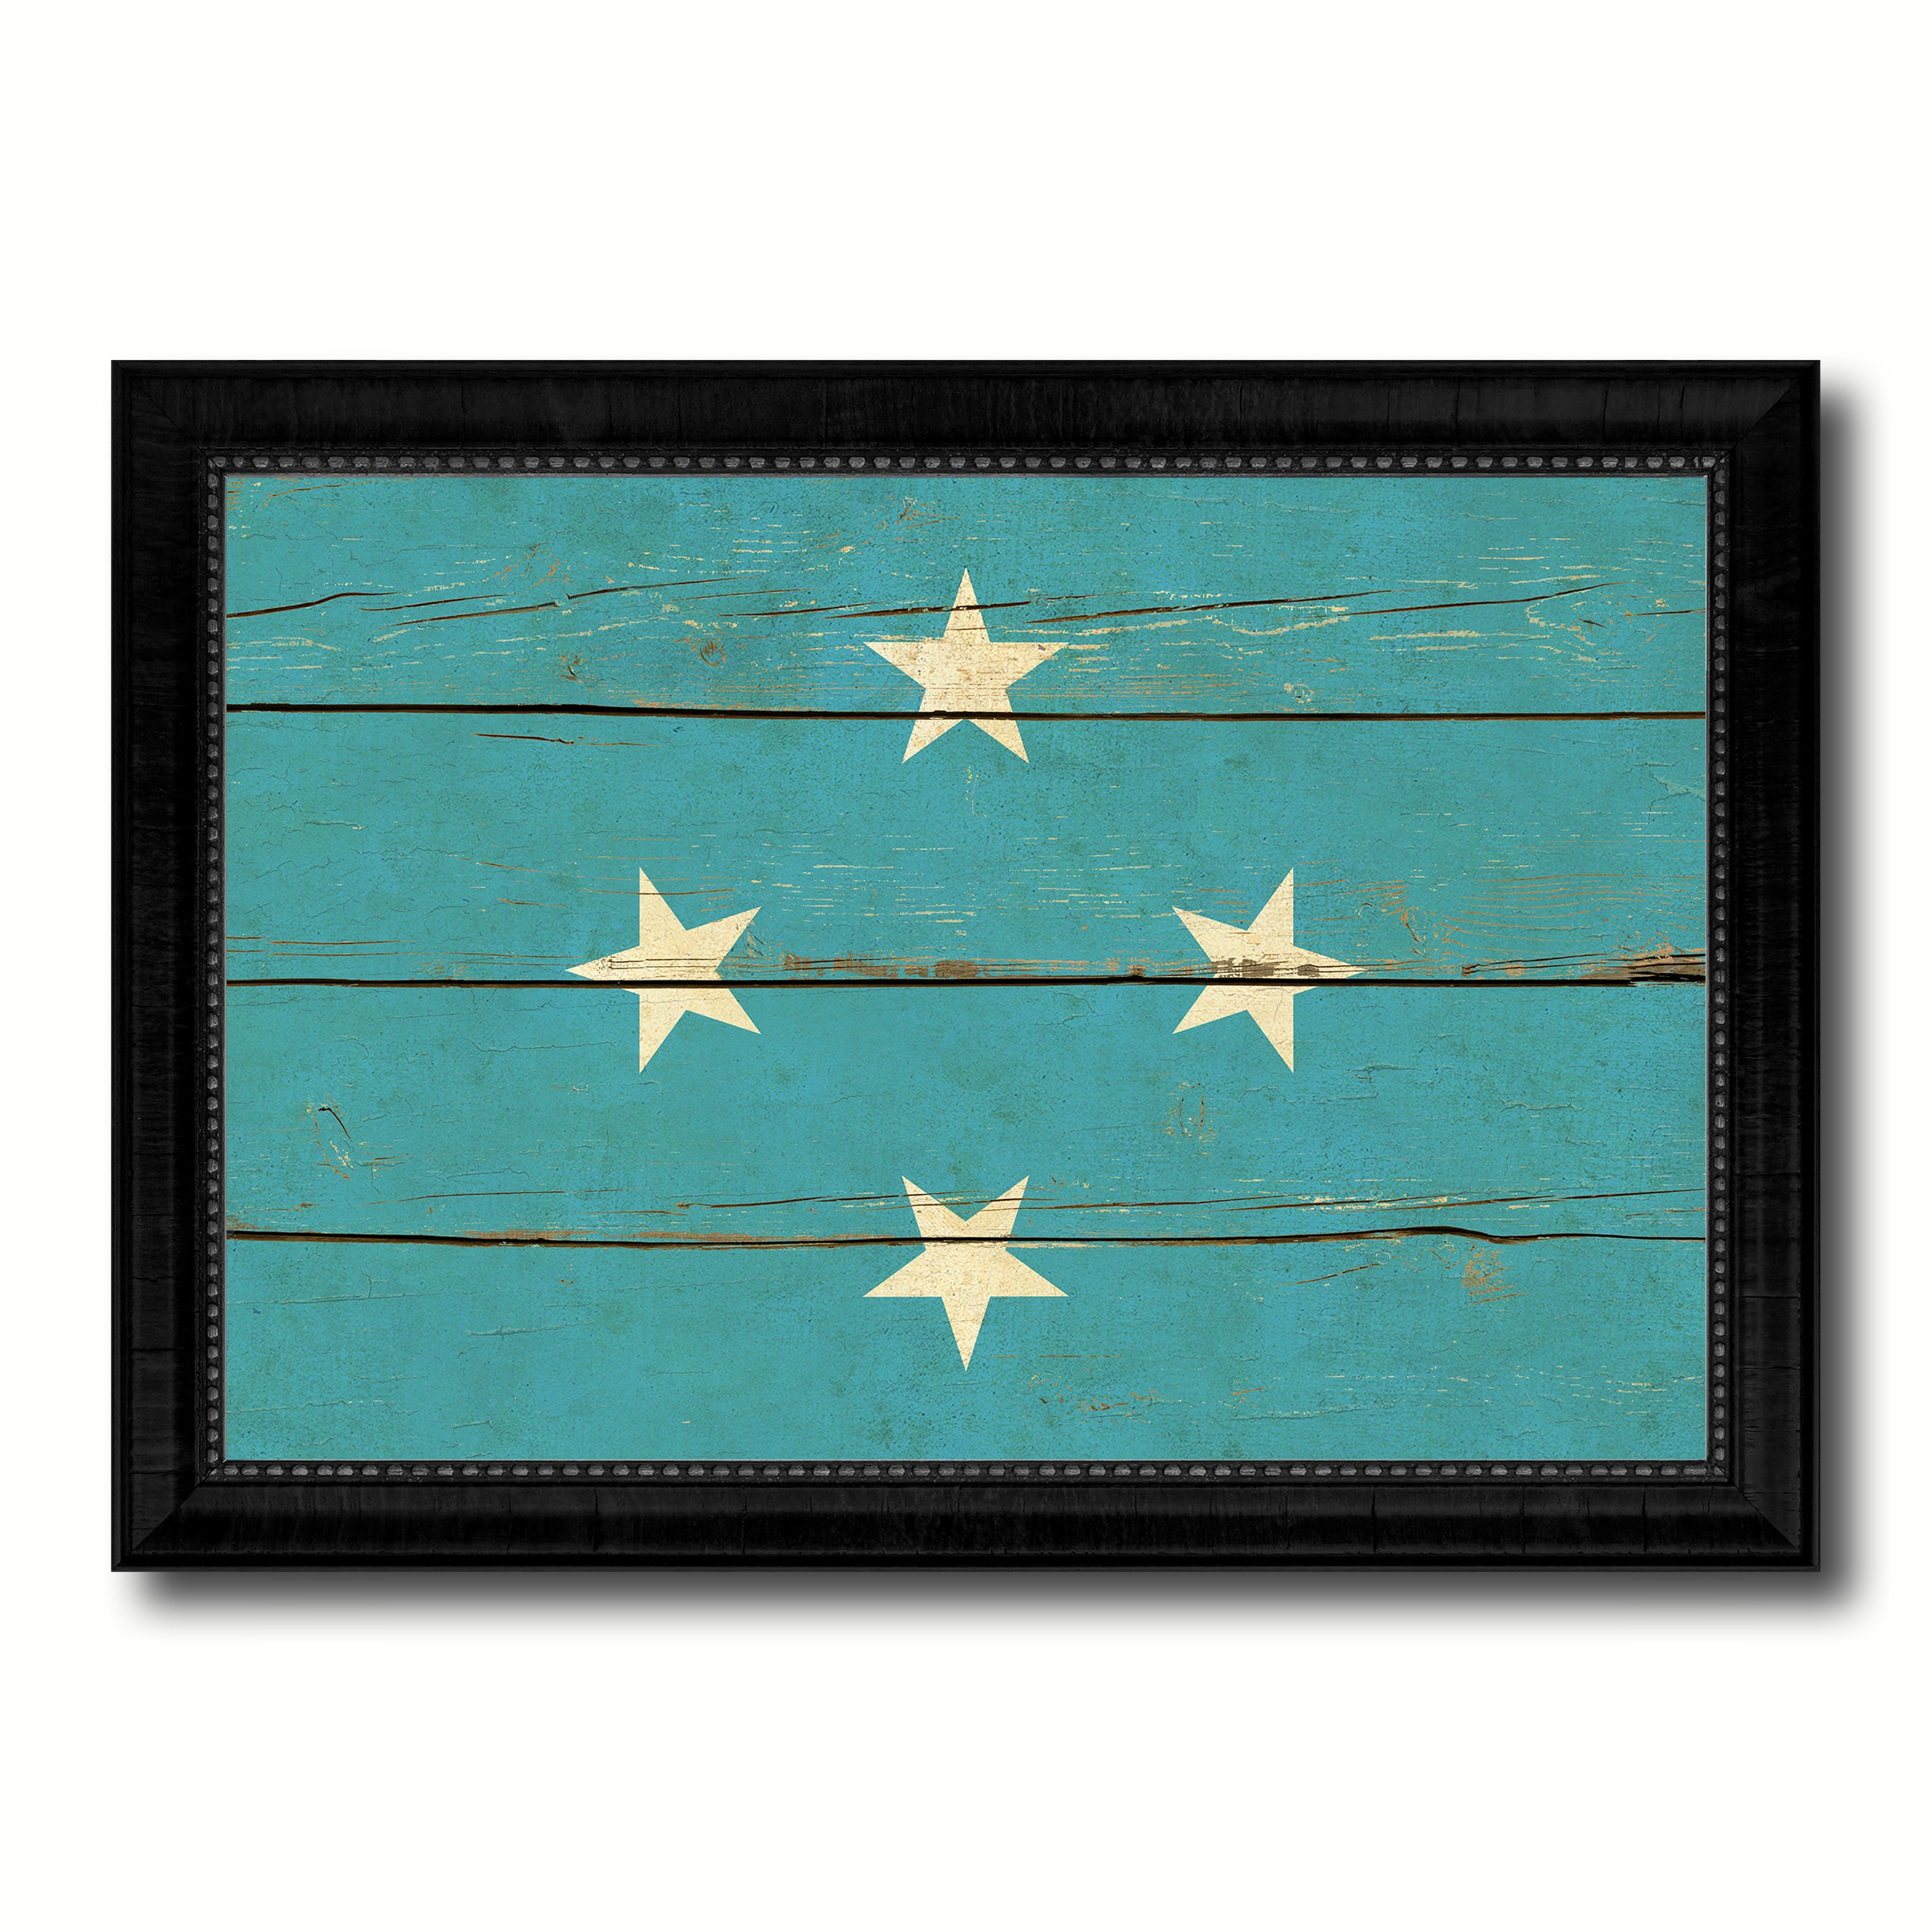 Micronesia Country Flag Vintage Canvas Print with Black Picture Frame Home Decor Gifts Wall Art Decoration Artwork